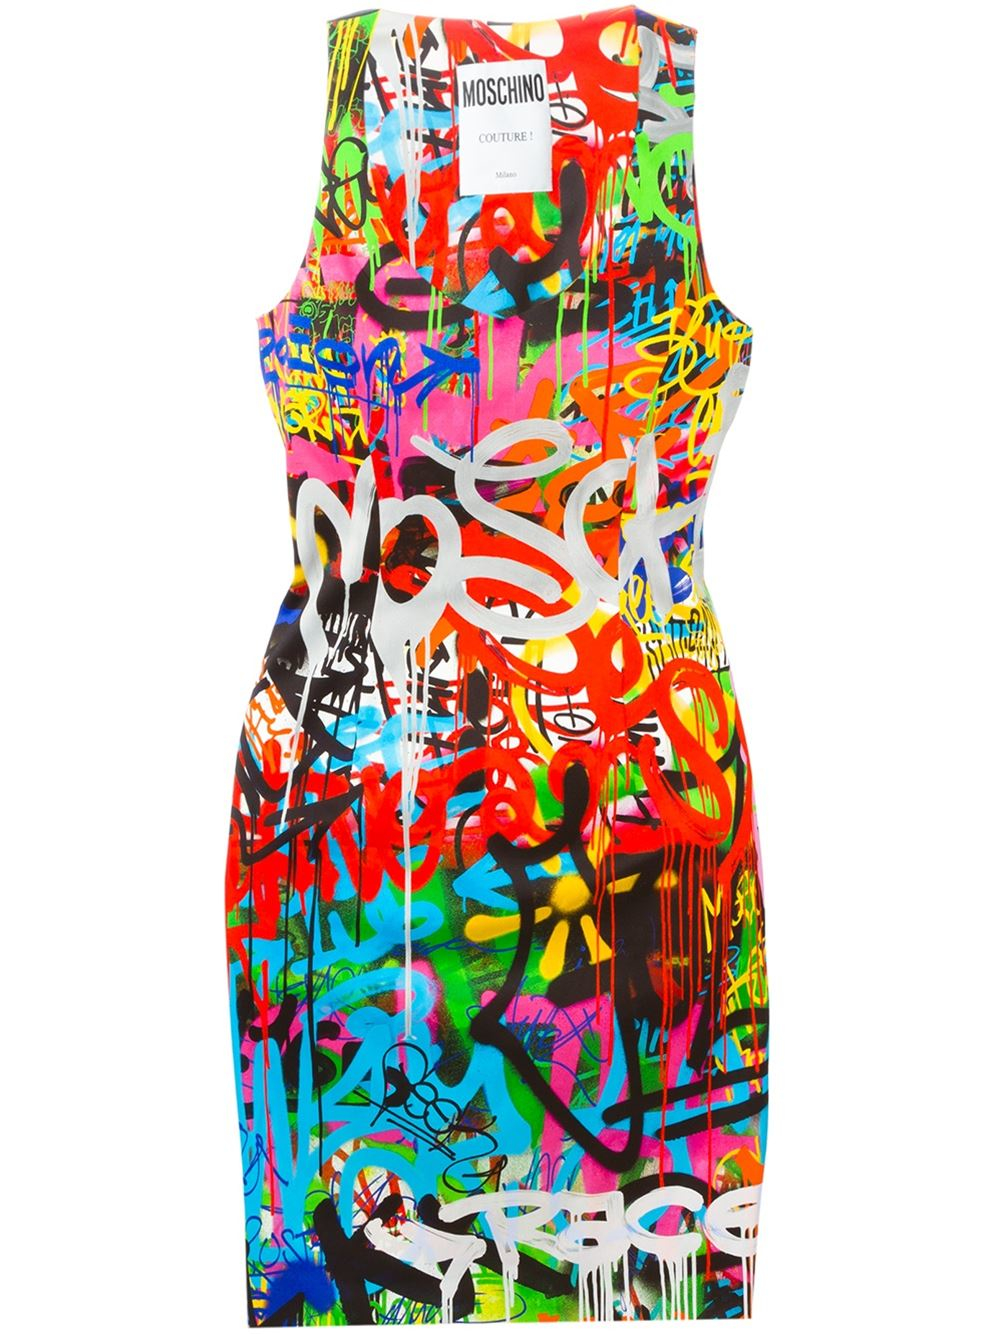 Moschino Graffiti Print Mini Dress Lyst